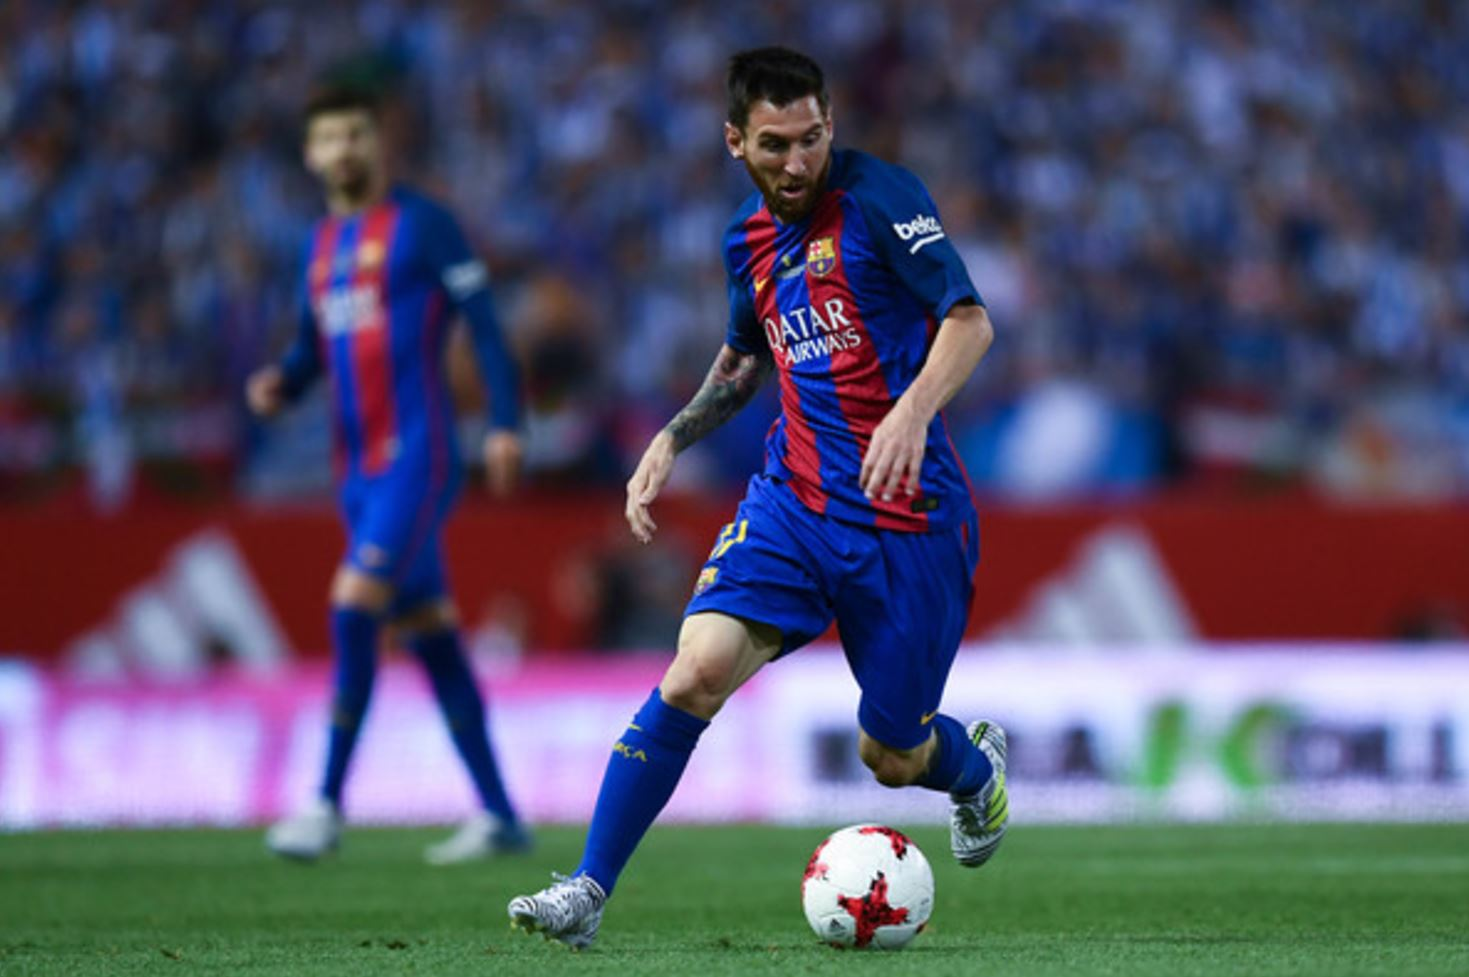 85ef0e4d9d1 What Nemeziz Boot is Lionel Messi Actually Wearing